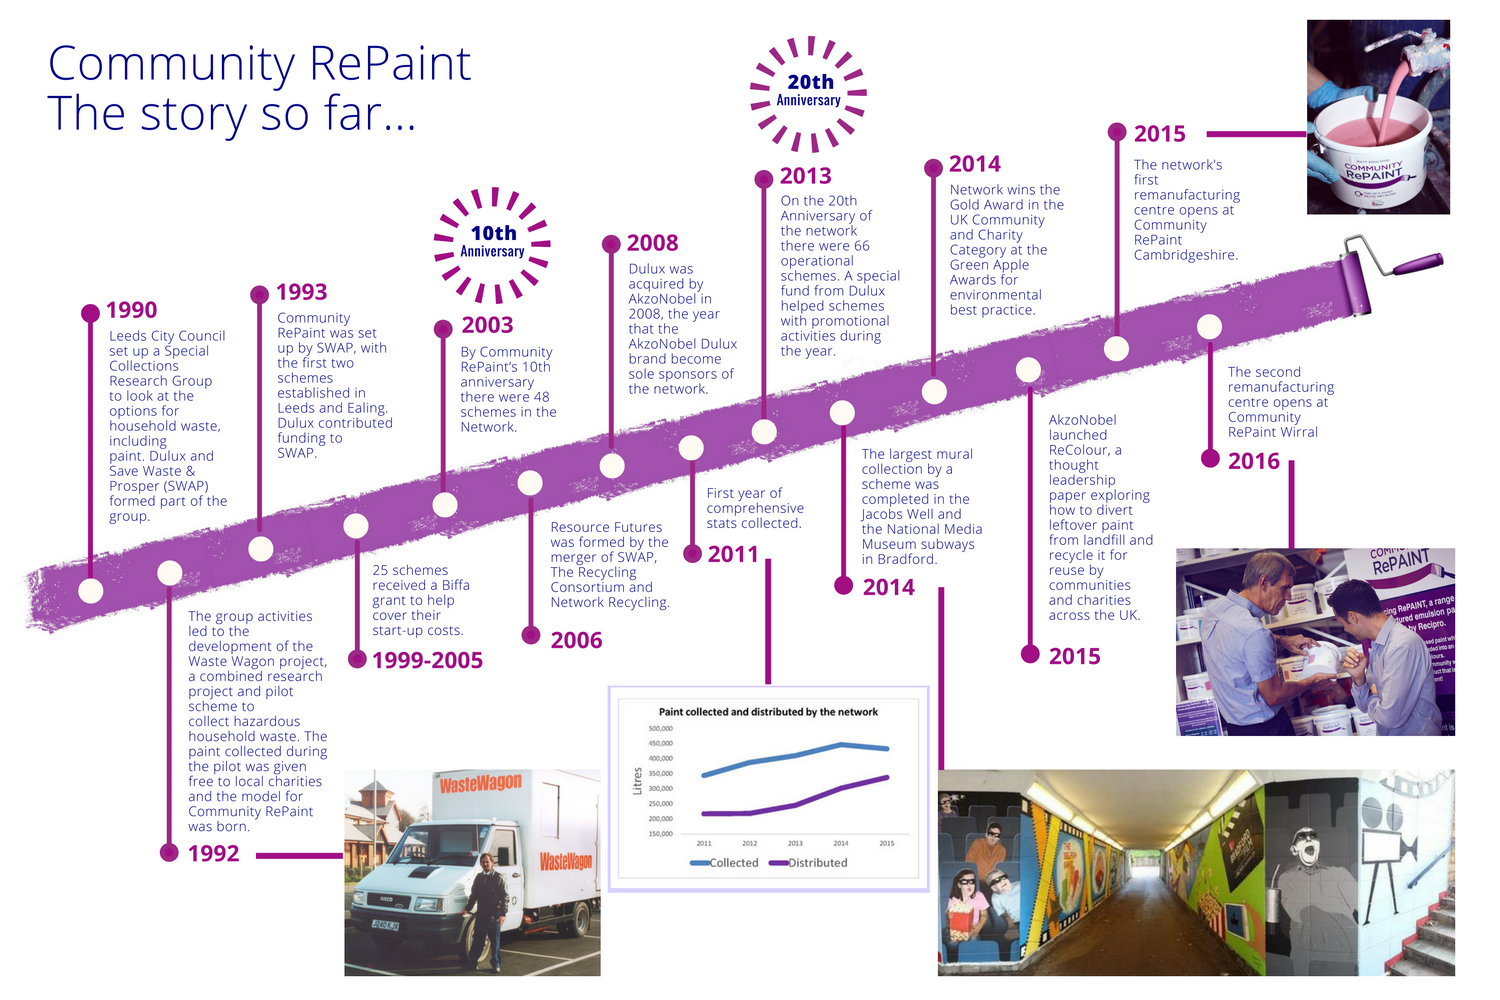 A timeline of Community RePaint from 1990 until 2016 showing how the network started off when Leeds City Council set up a Special Collections Research Group to look at options to recycled paint.